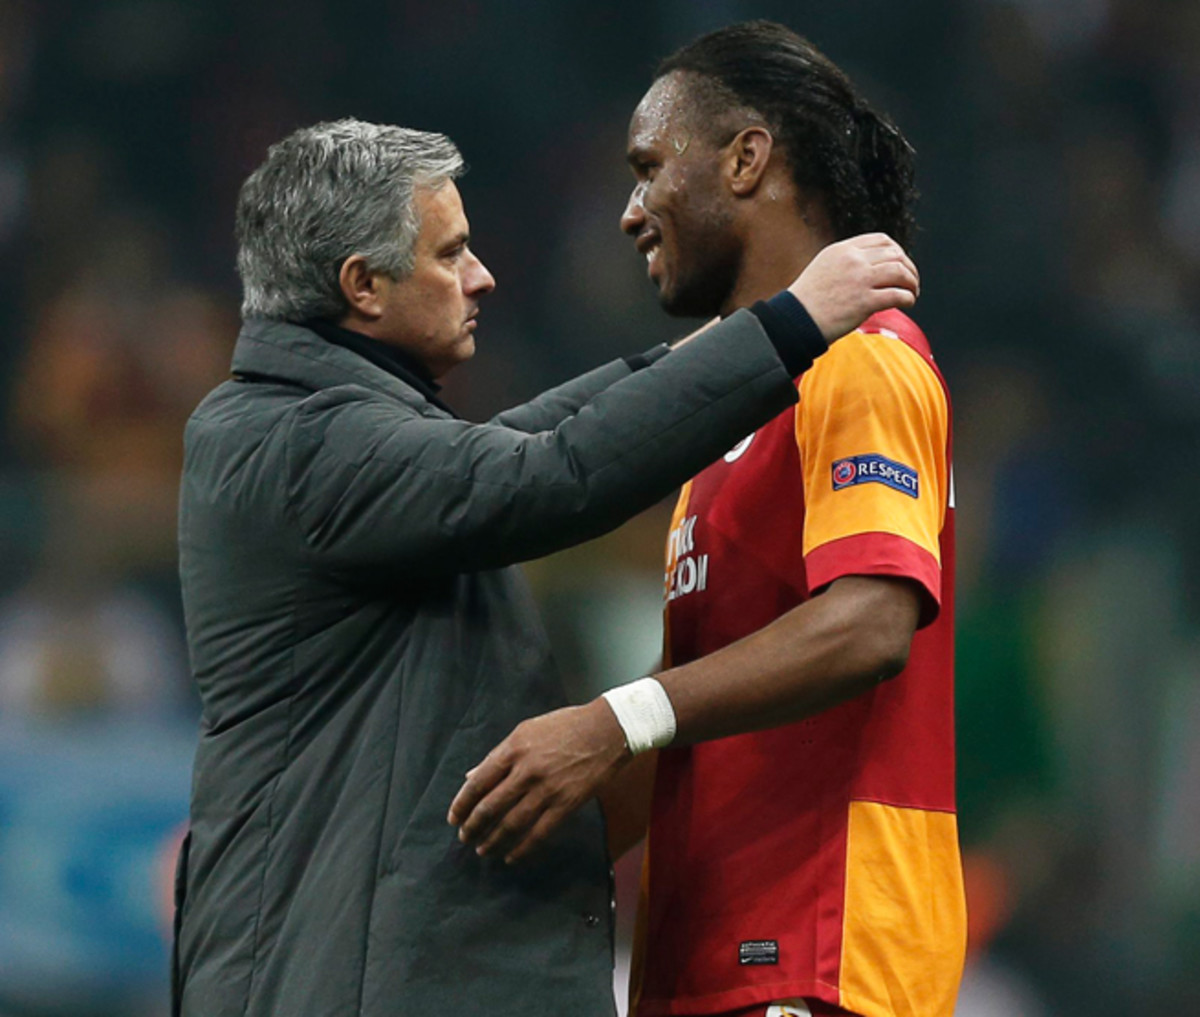 Chelsea manager Jose Mourinho, left, will have to gameplan for his former star, Galatasaray's Didier Drogba, ahead of their Champions League matchup this week.